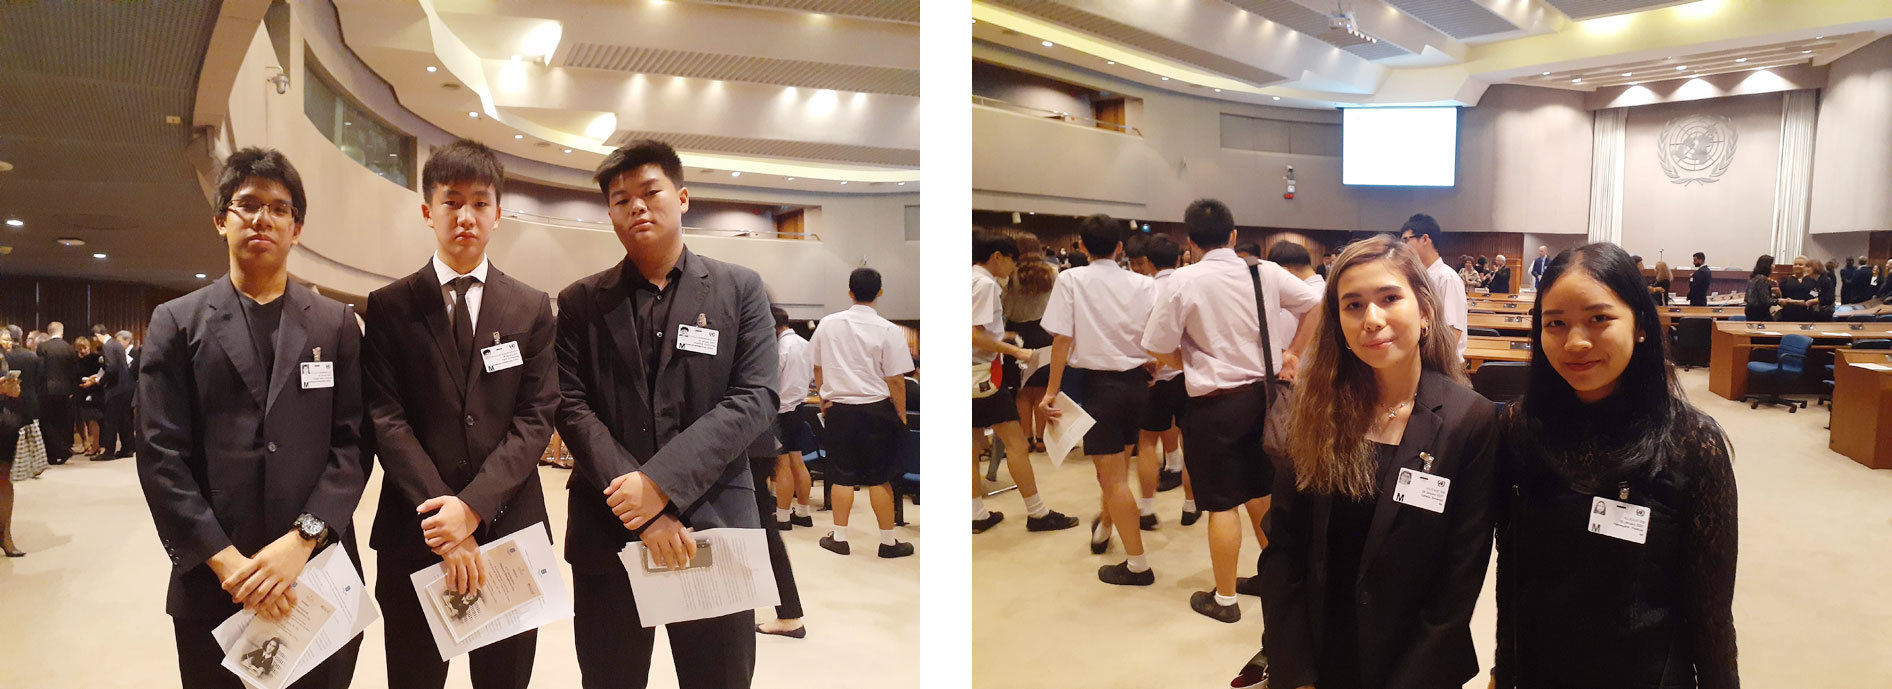 RIS Students Attend Holocaust Remembrance Day, Ruamrudee International School Bangkok